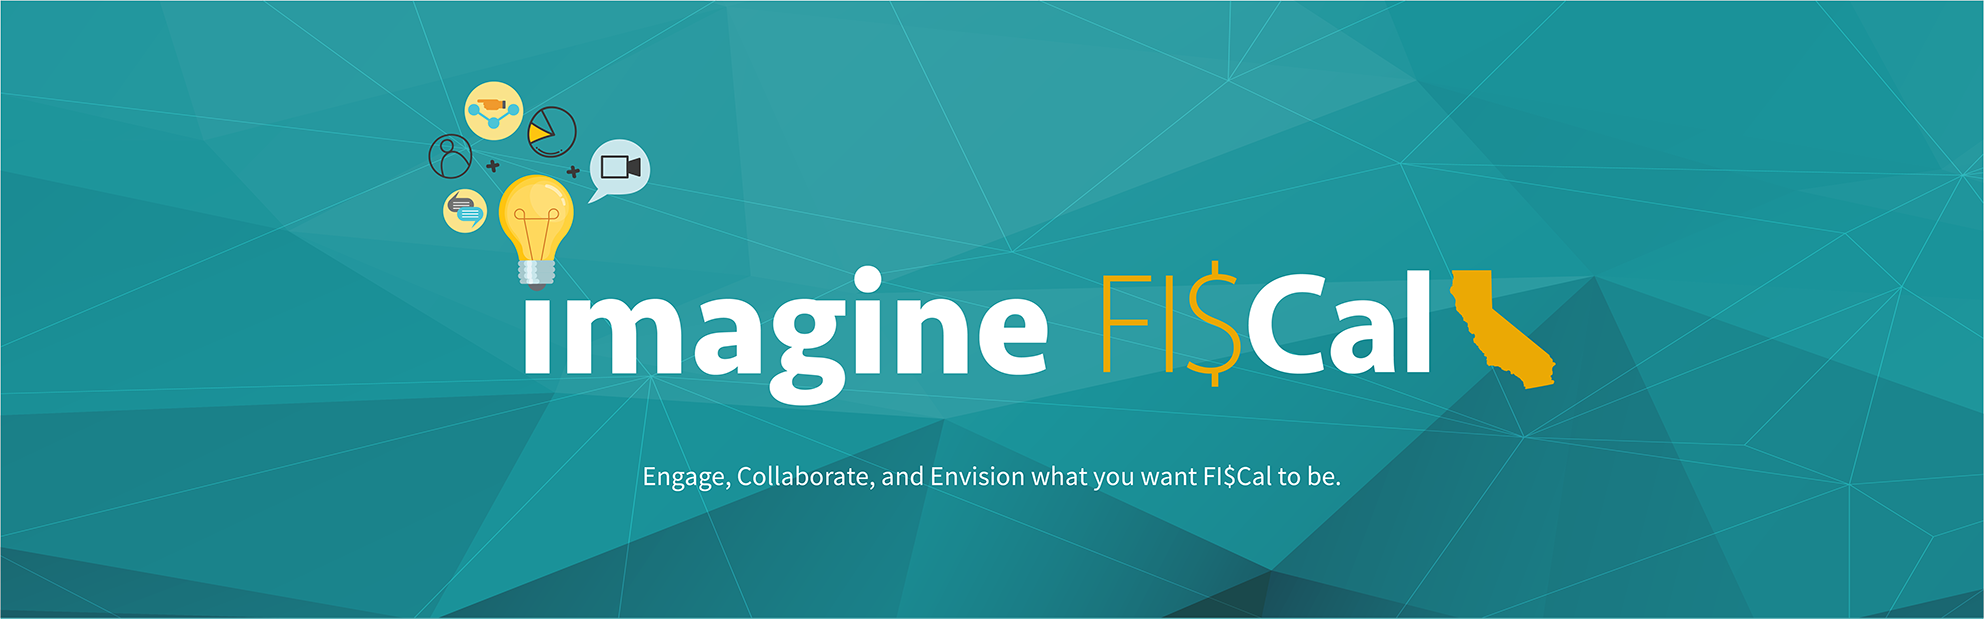 Imagine FI$Cal. Engage, Collaborate, Envision what you want FI$Cal to be.